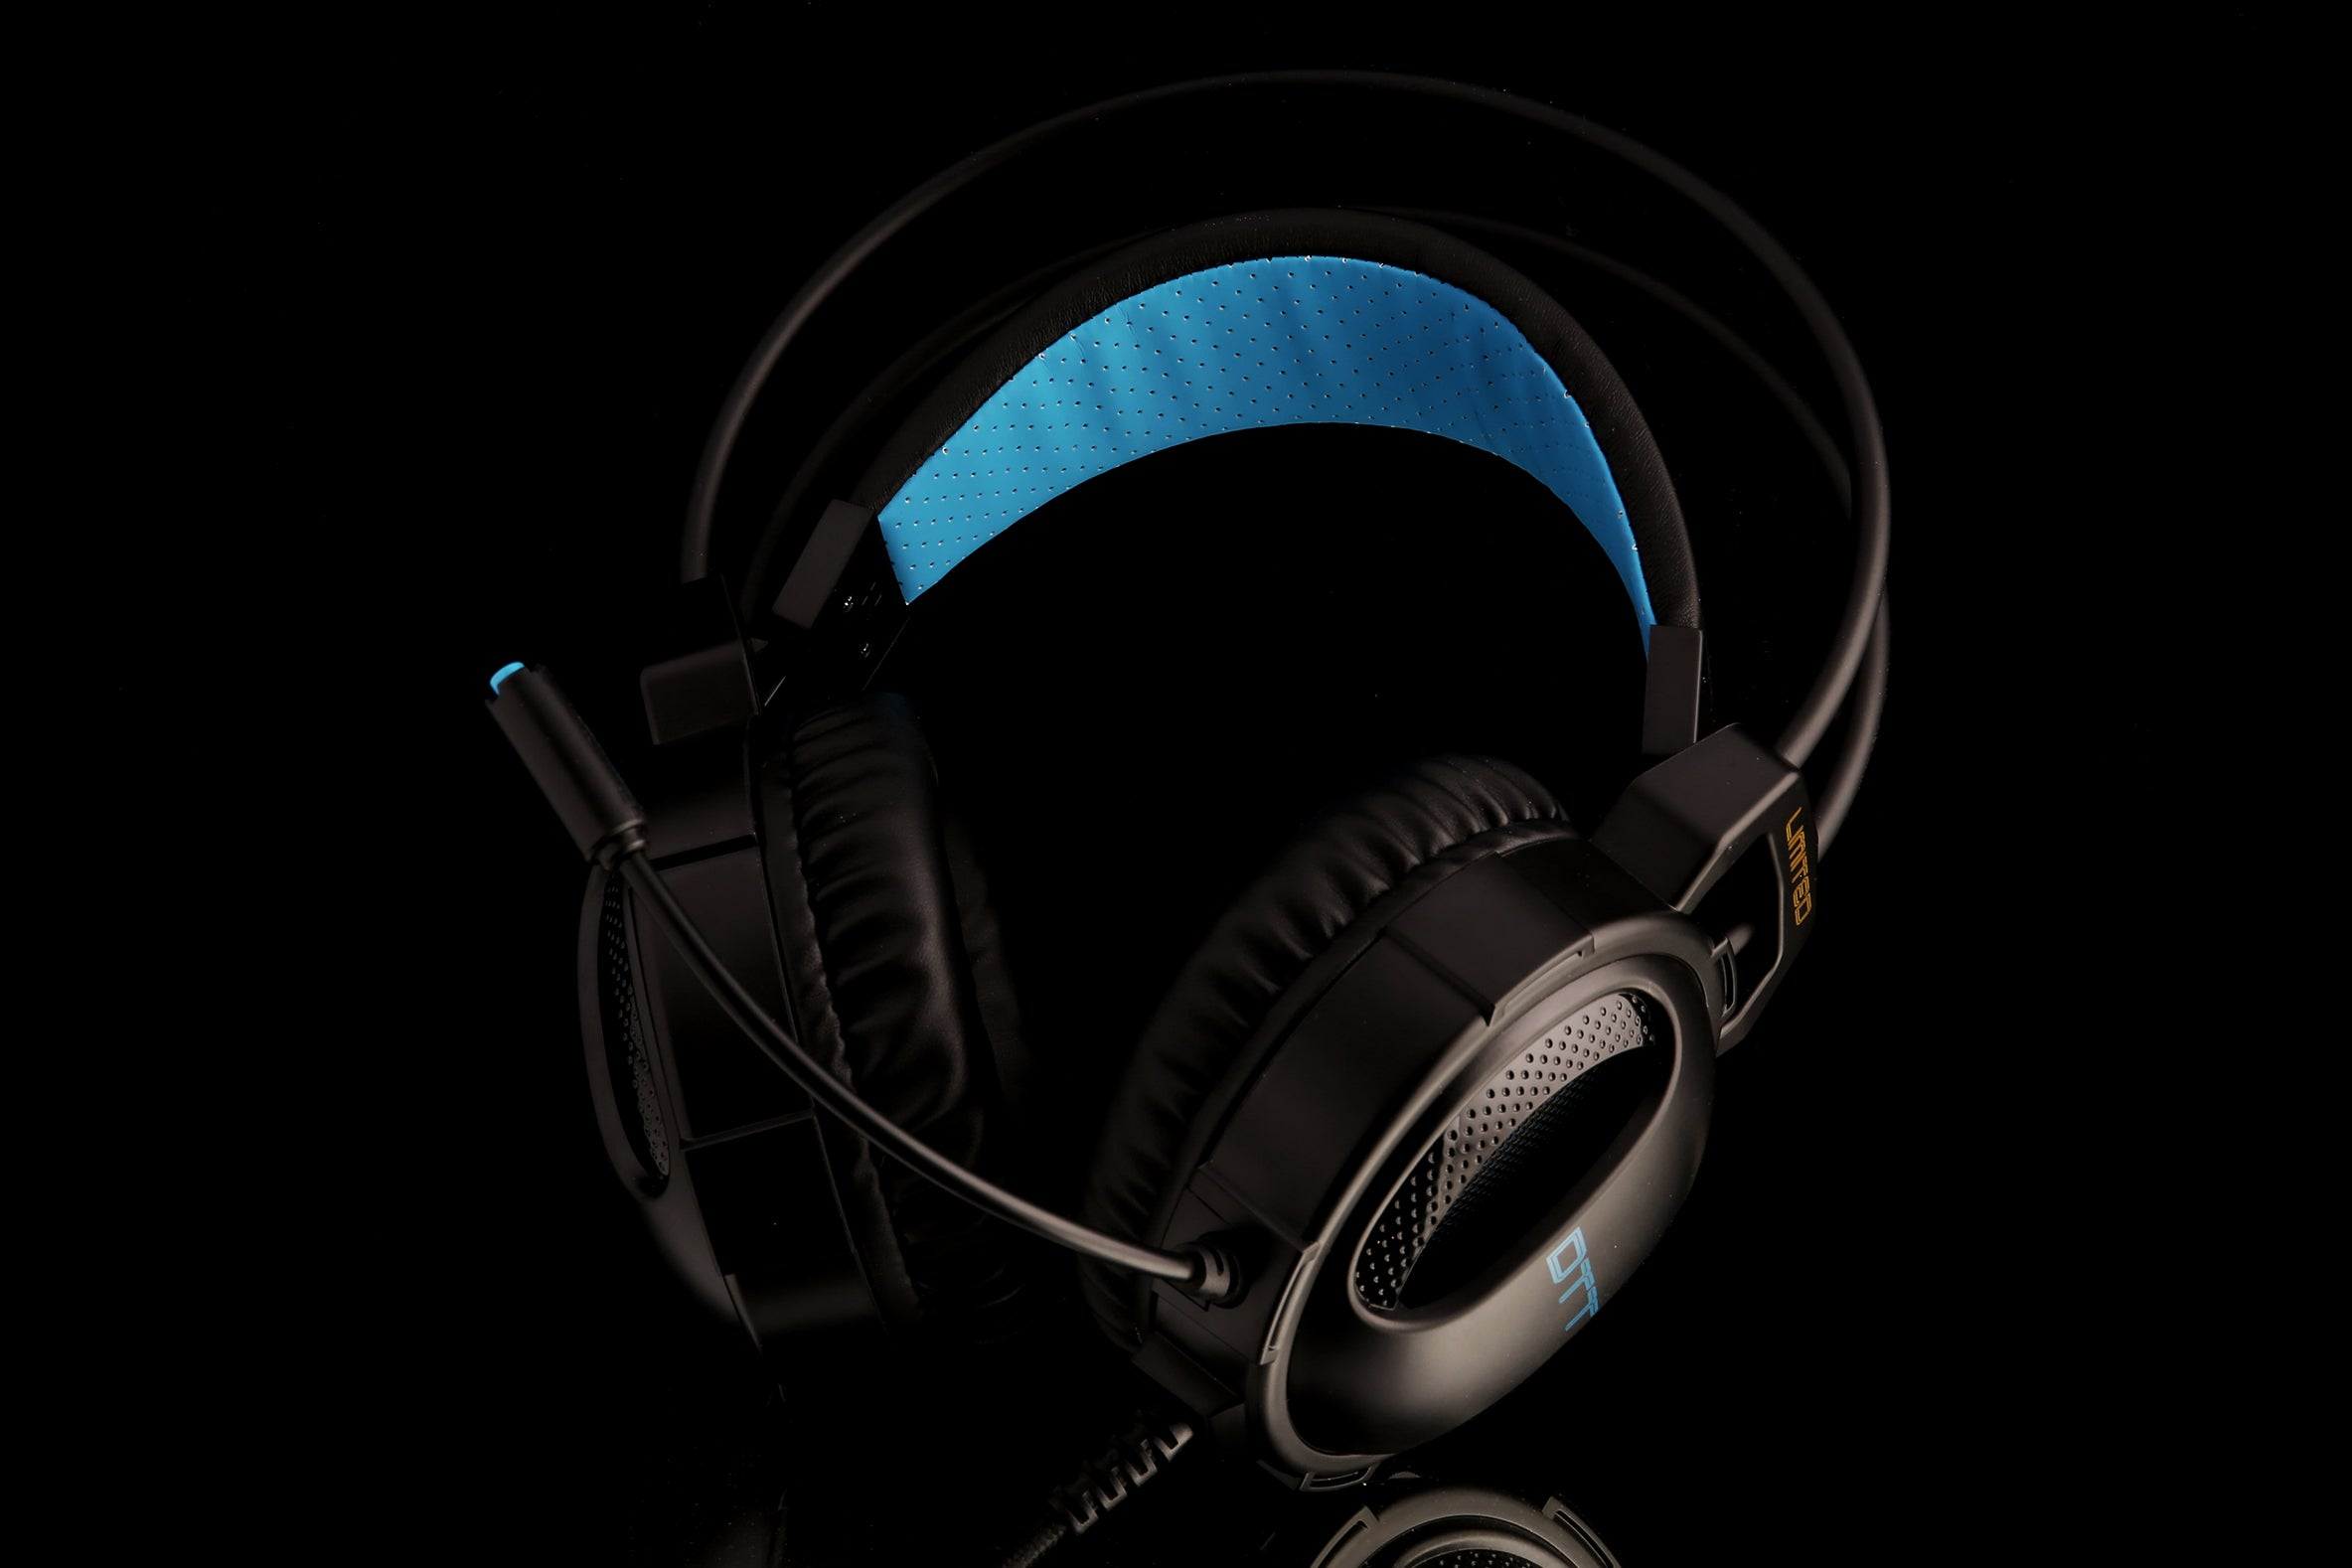 VELOX GAMING HEADSET LIMITED EDITION